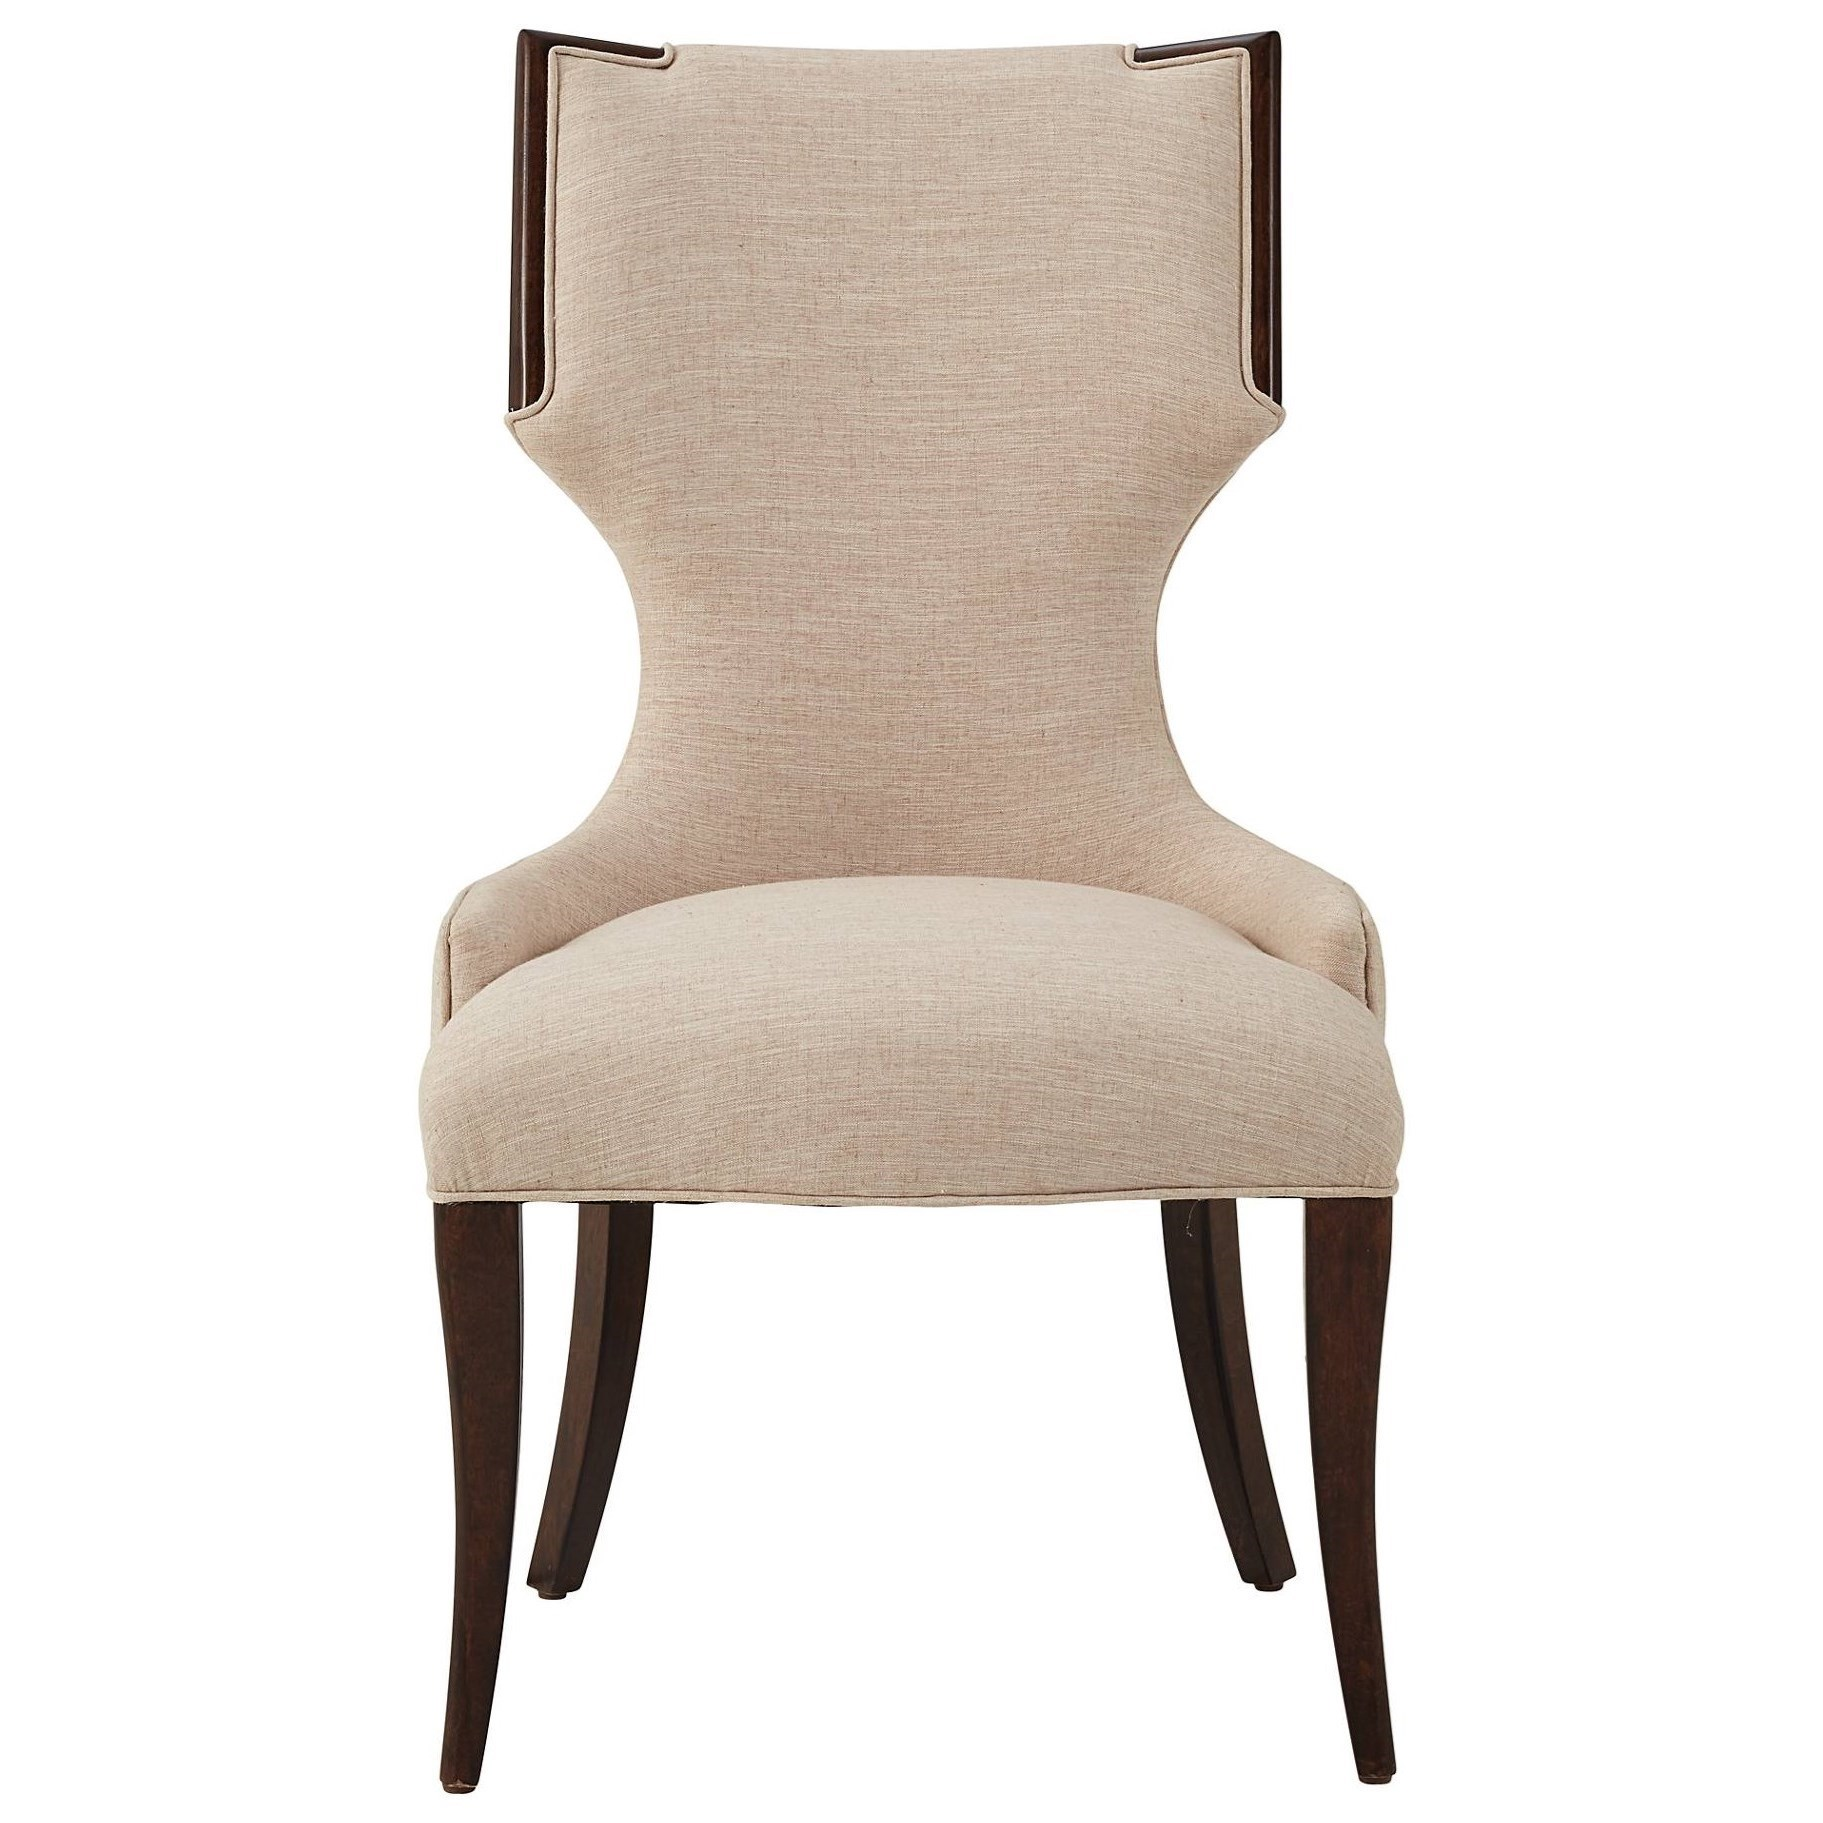 Stanley Furniture Virage Host Chair   Becker Furniture World   Dining Arm  Chairs